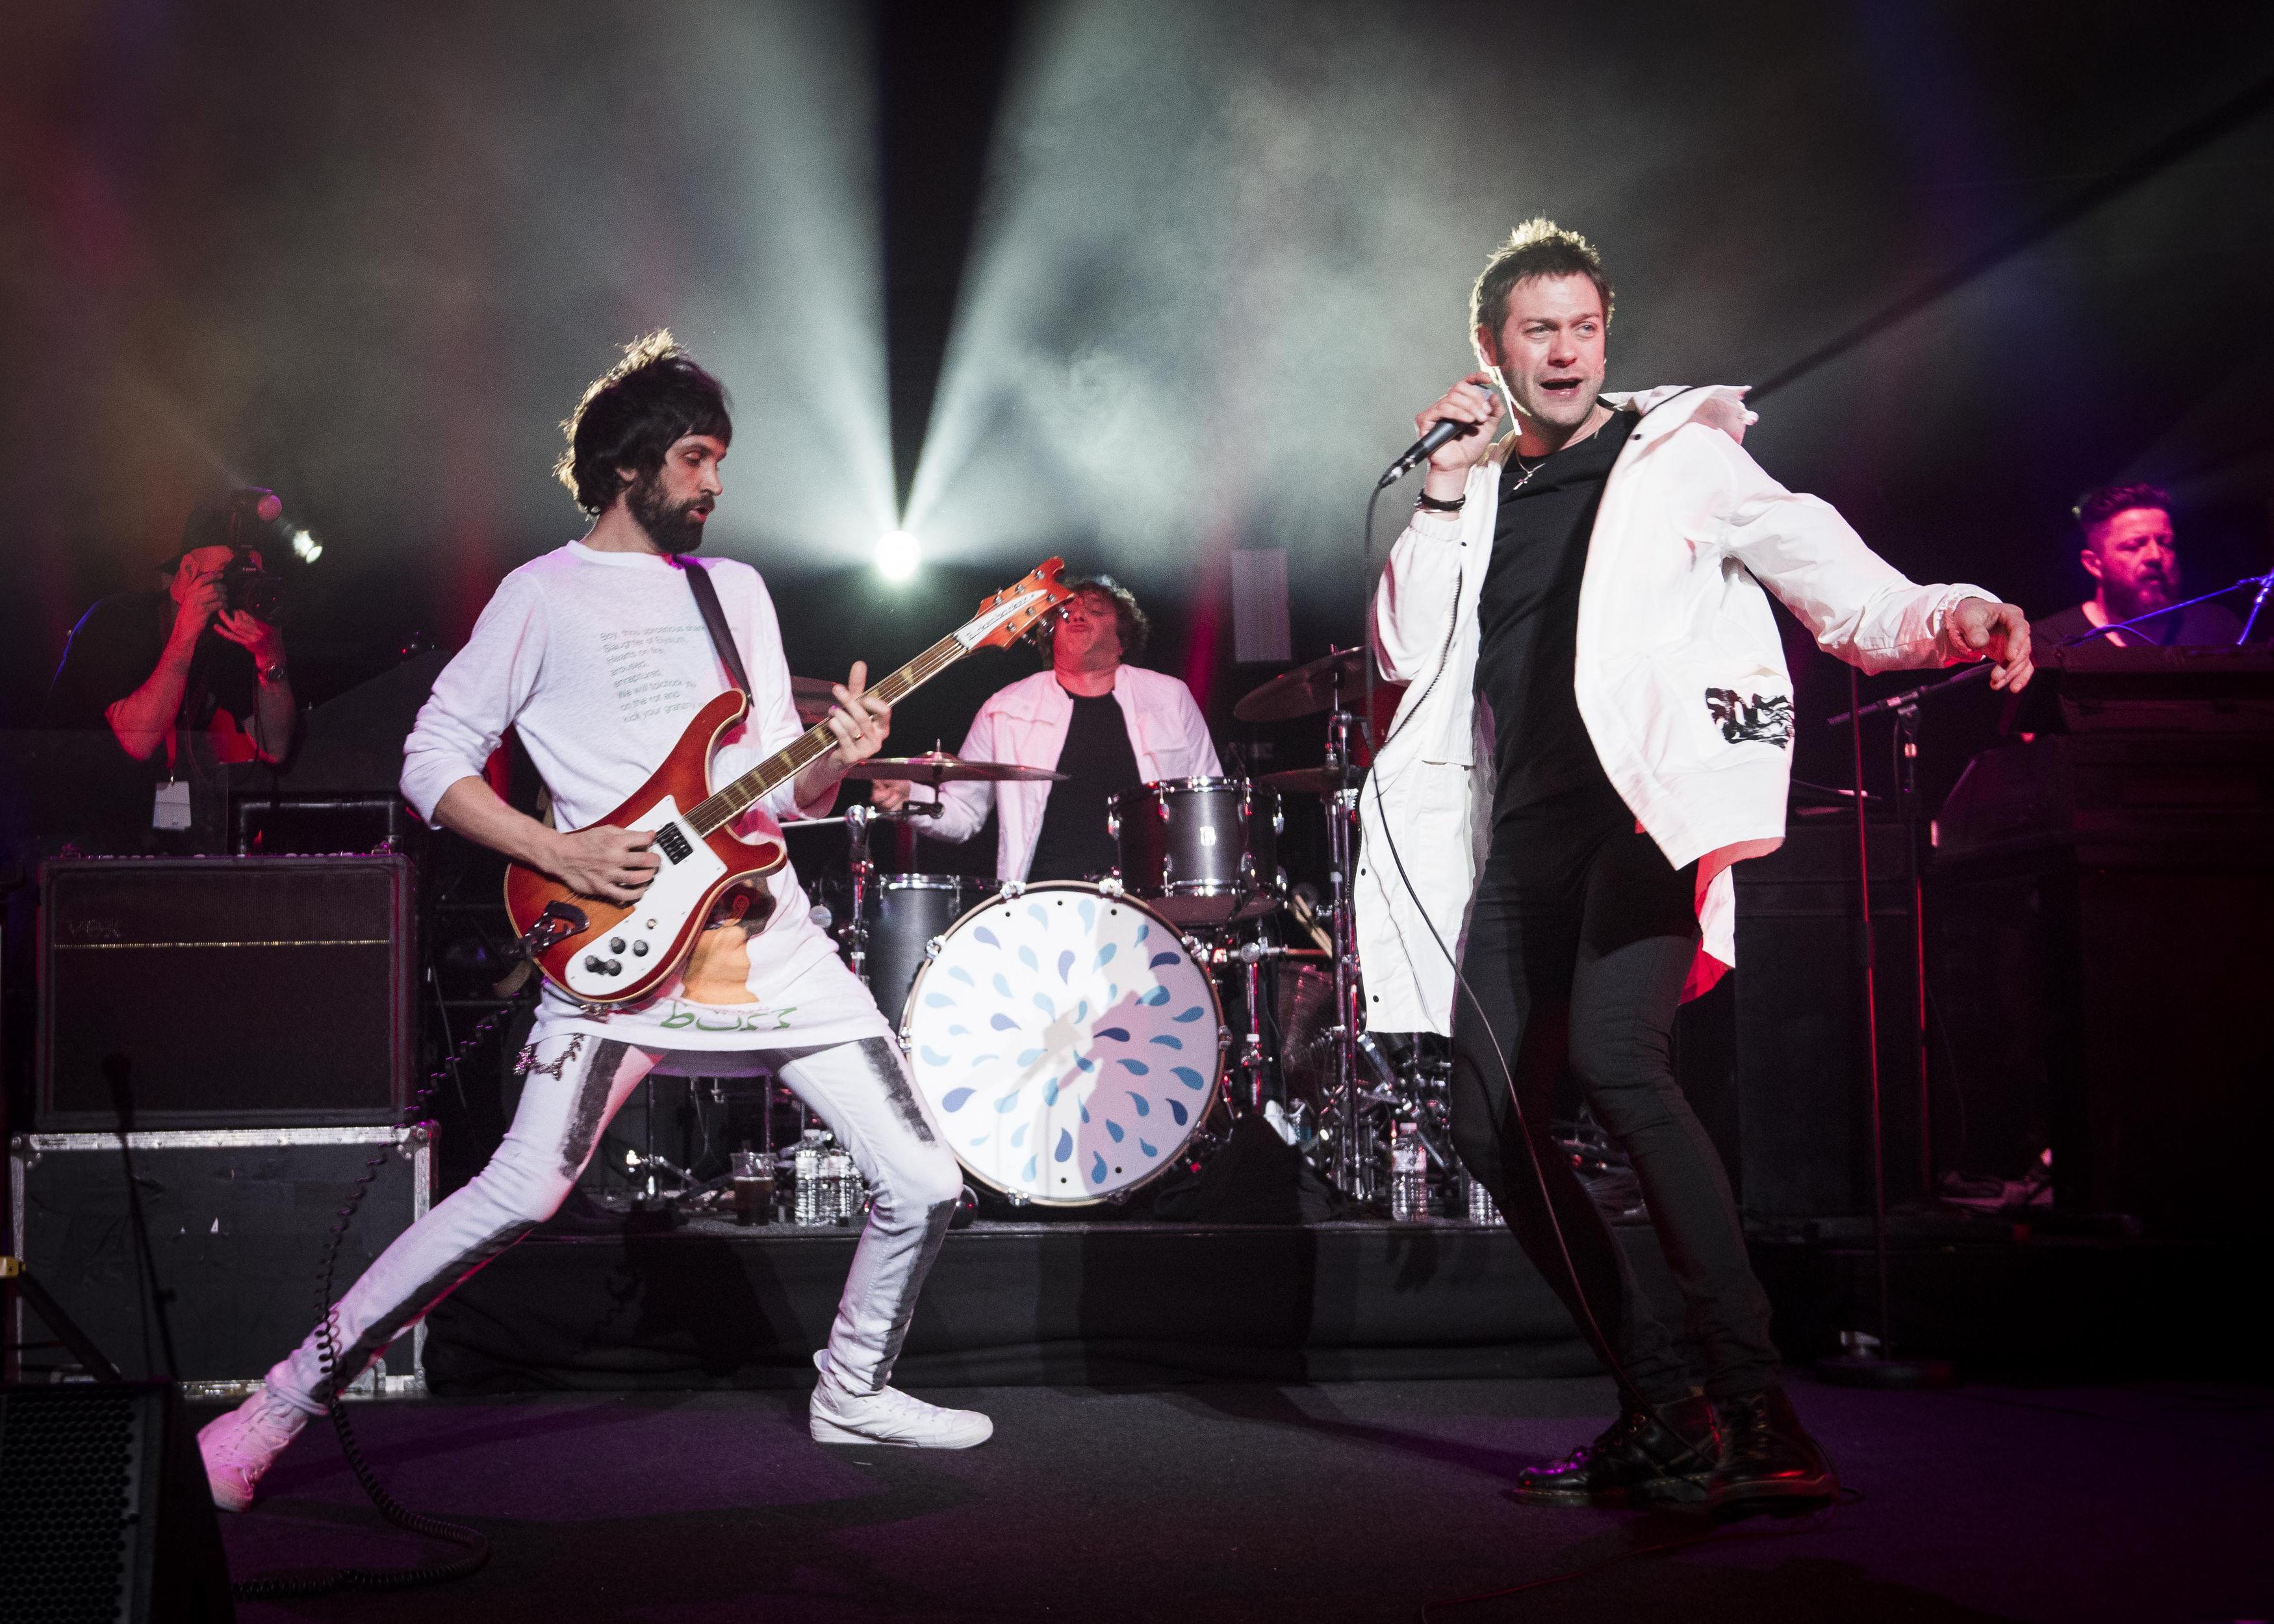 Sergio Pizzorno and Tom Meighan from Kasabian